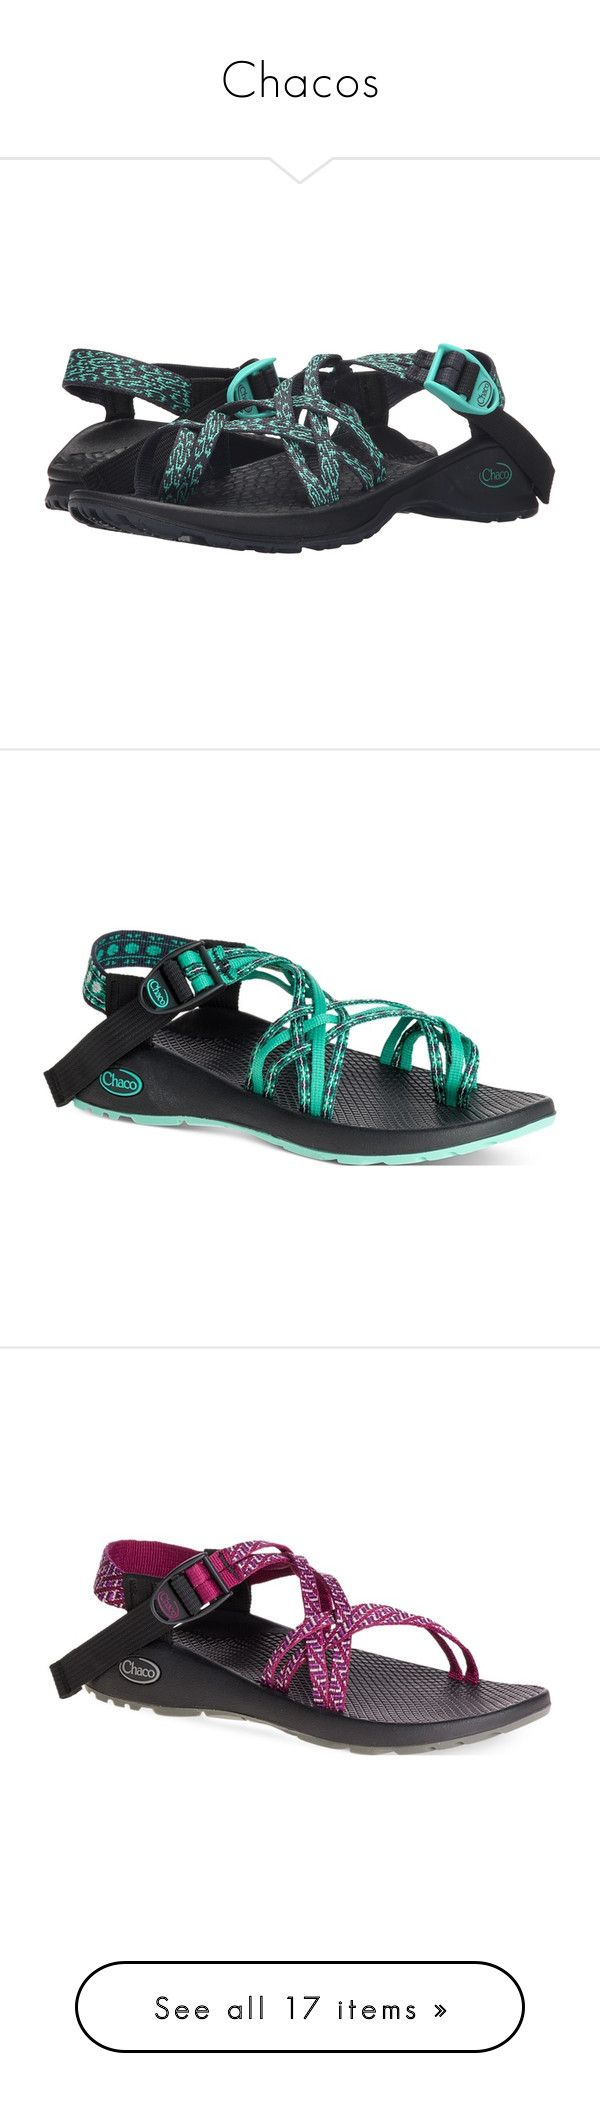 """Chacos"" by preppy-southern-girl88 ❤ liked on Polyvore featuring shoes, sandals, platform shoes, chaco sandals, grip shoes, buckle platform sandals, chaco, chuckwalla aqua, chaco shoes and aqua shoes"